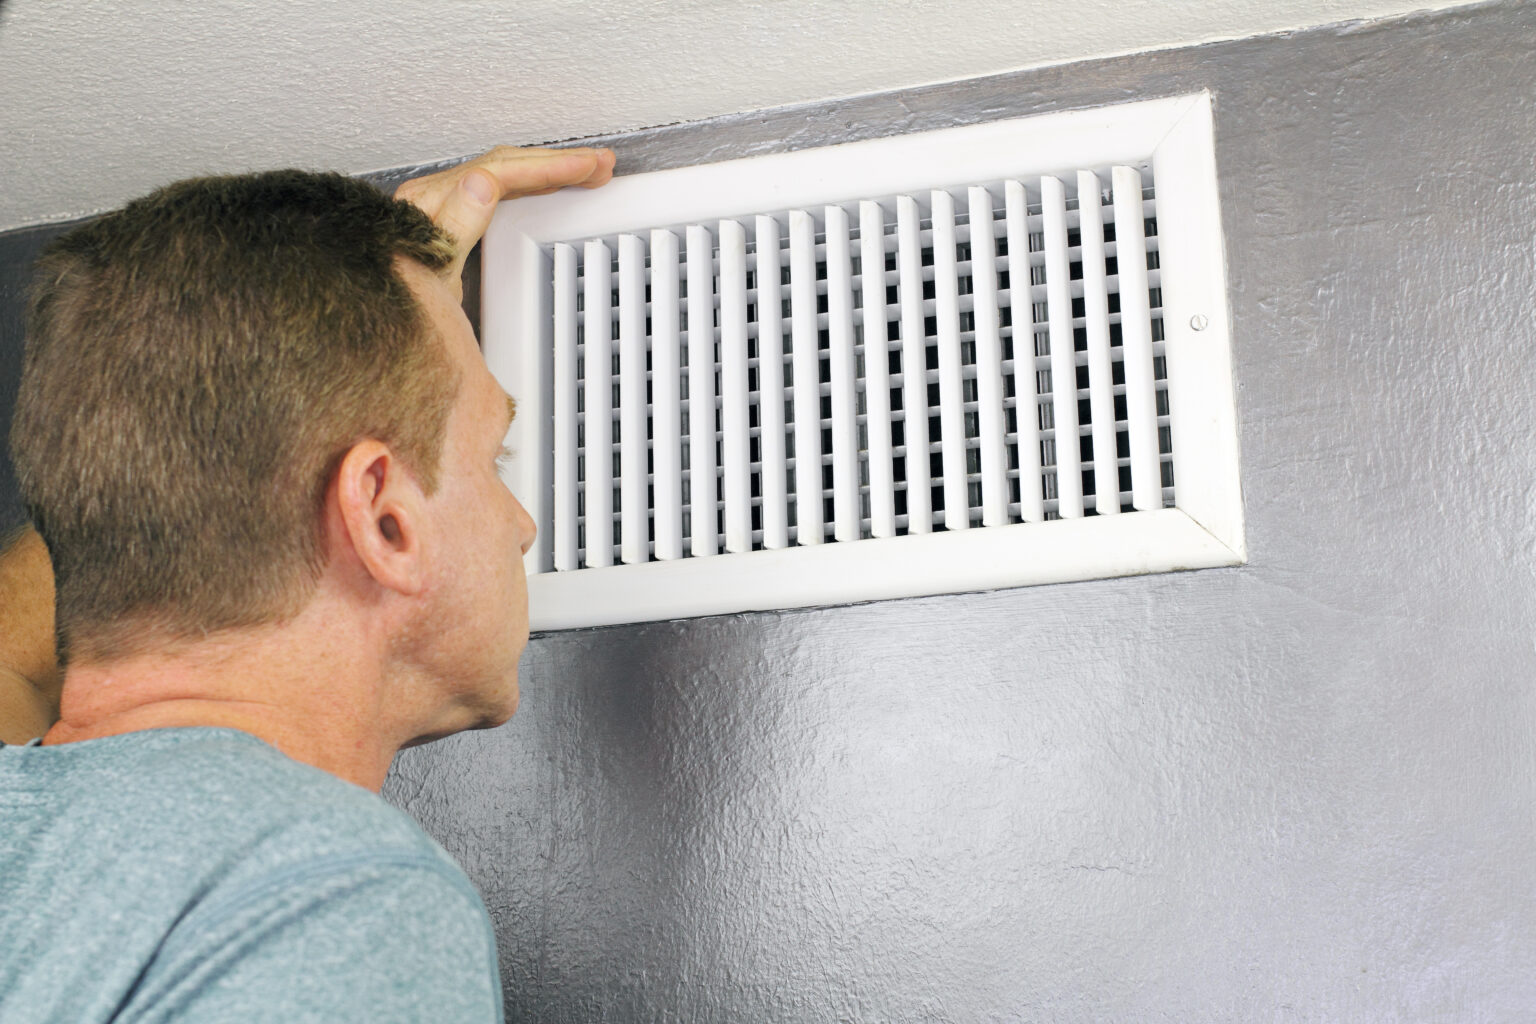 image of a man inspecting an air vent